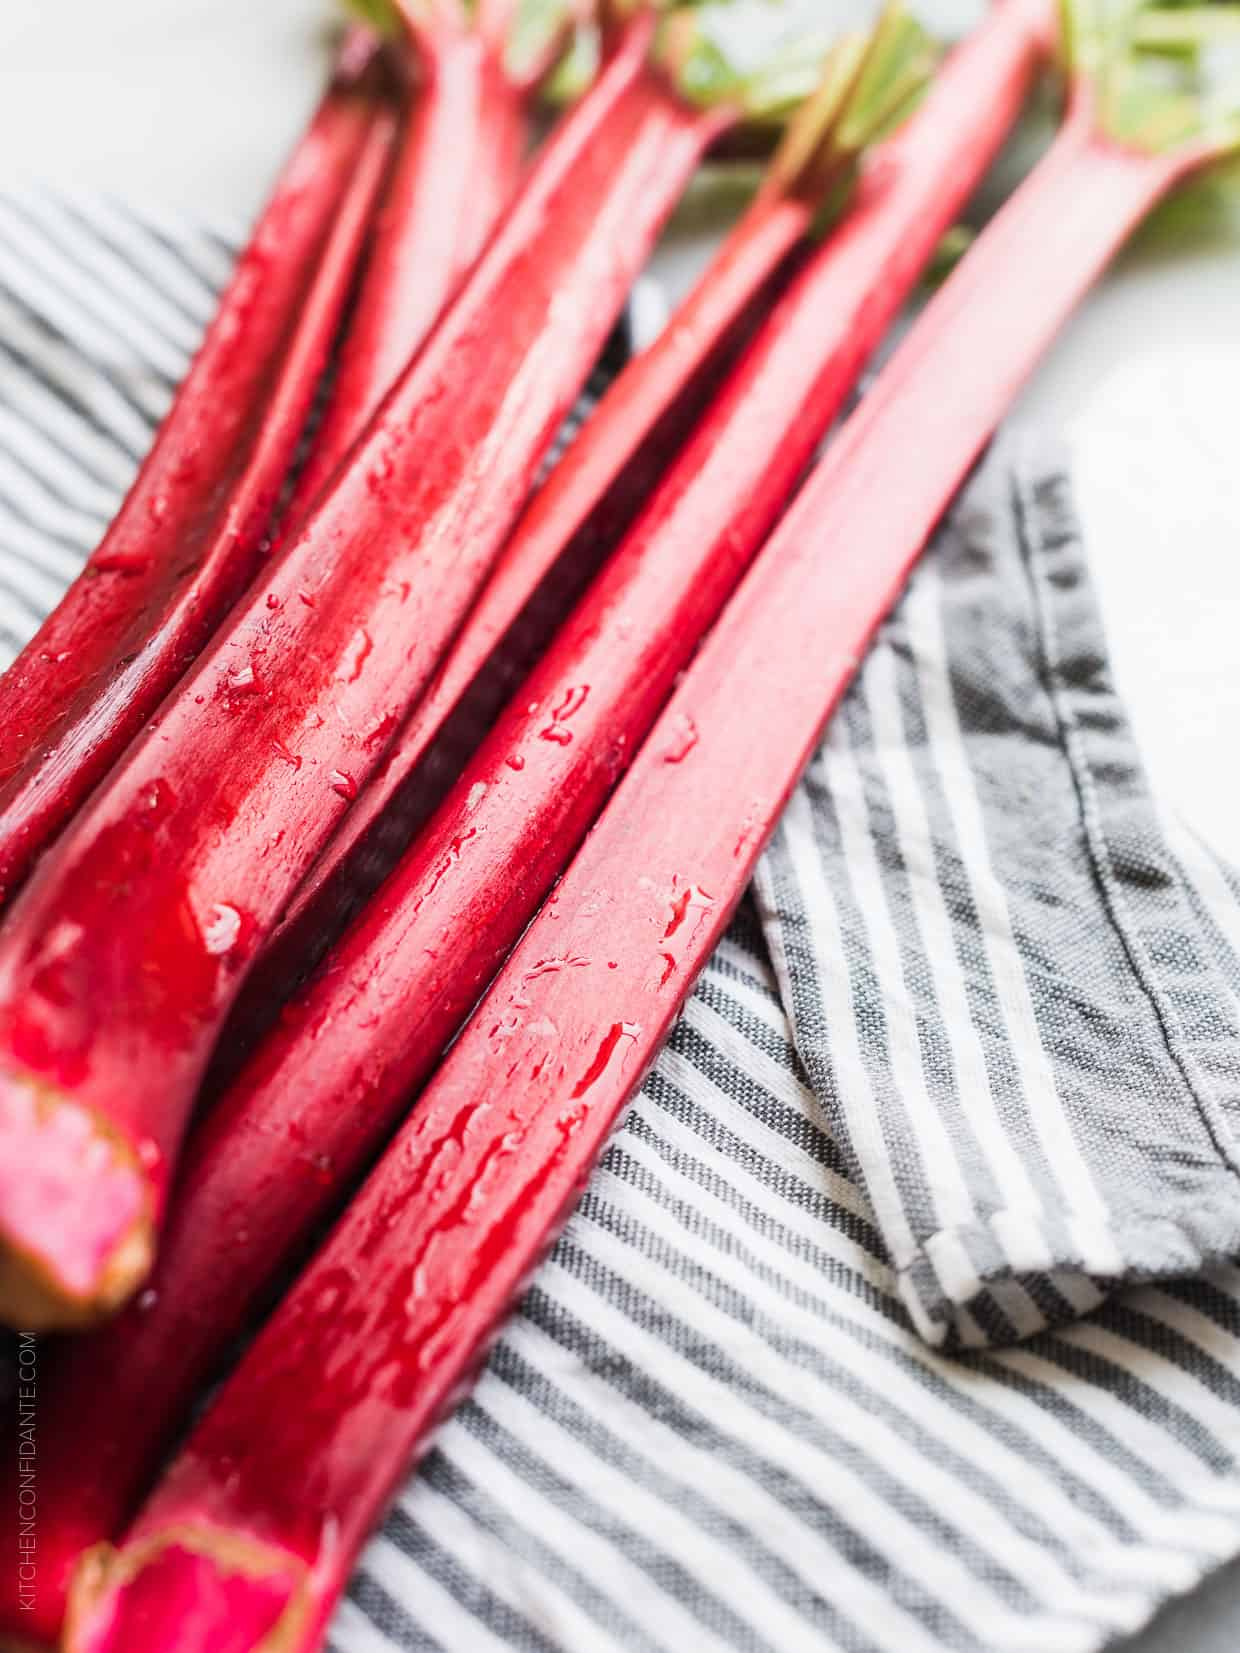 Think rhubarb is just for dessert? Think again! You'll love it in a tangy Rhubarb-Wine BBQ Sauce!